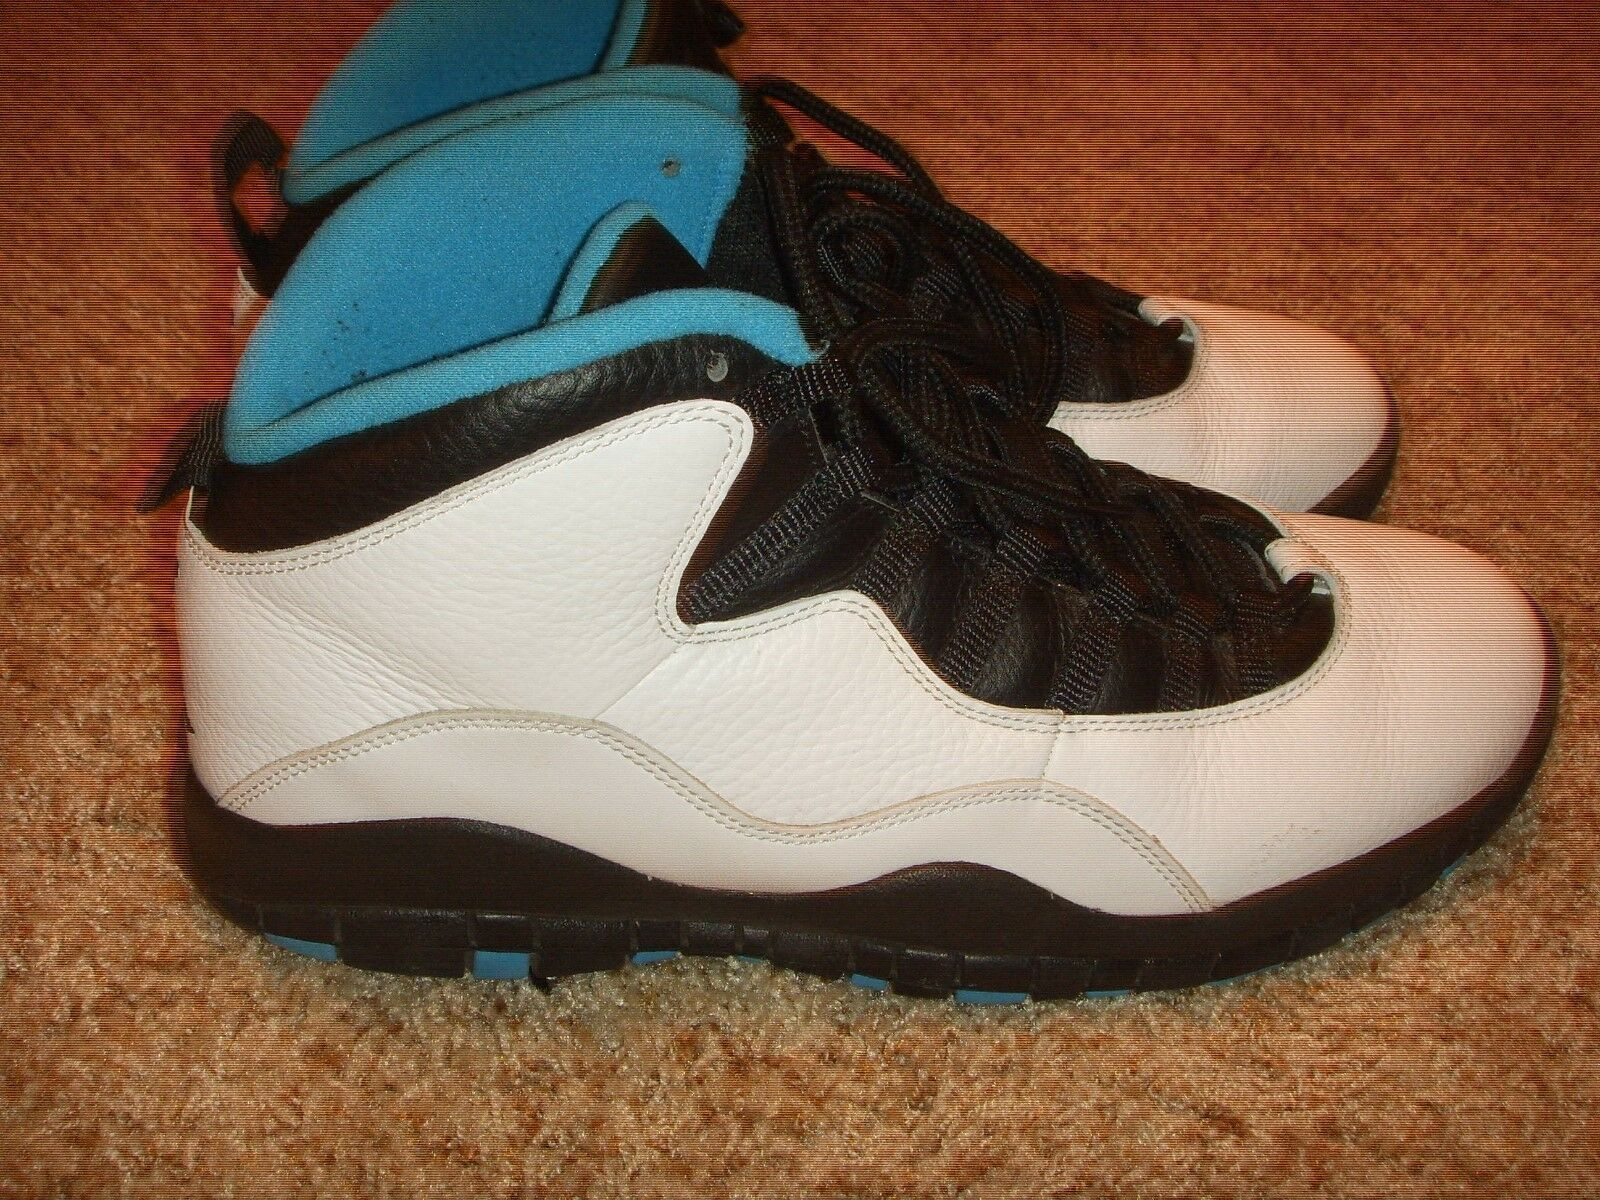 98641d3c20 Nike Air Jordan X 10 Retro WhiteDark Powder bluee-Black 310805-106 Mens Size